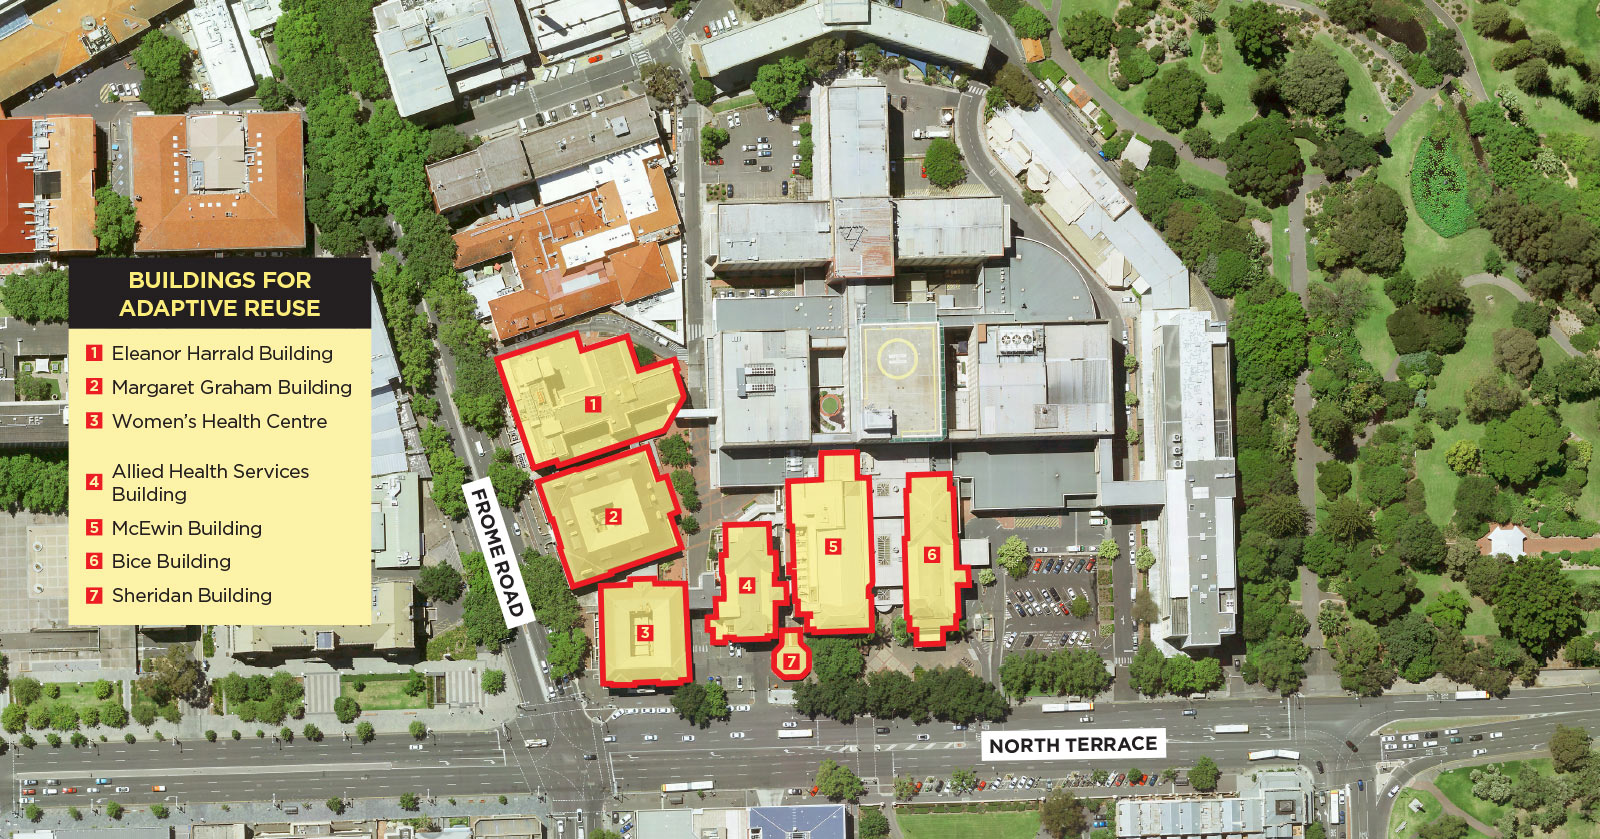 Aerial map showing location of Margaret Graham, McEwin, Women's Health Centre, Allied Health Services, Bice, Sheridan and Eleanor Harrald buildings